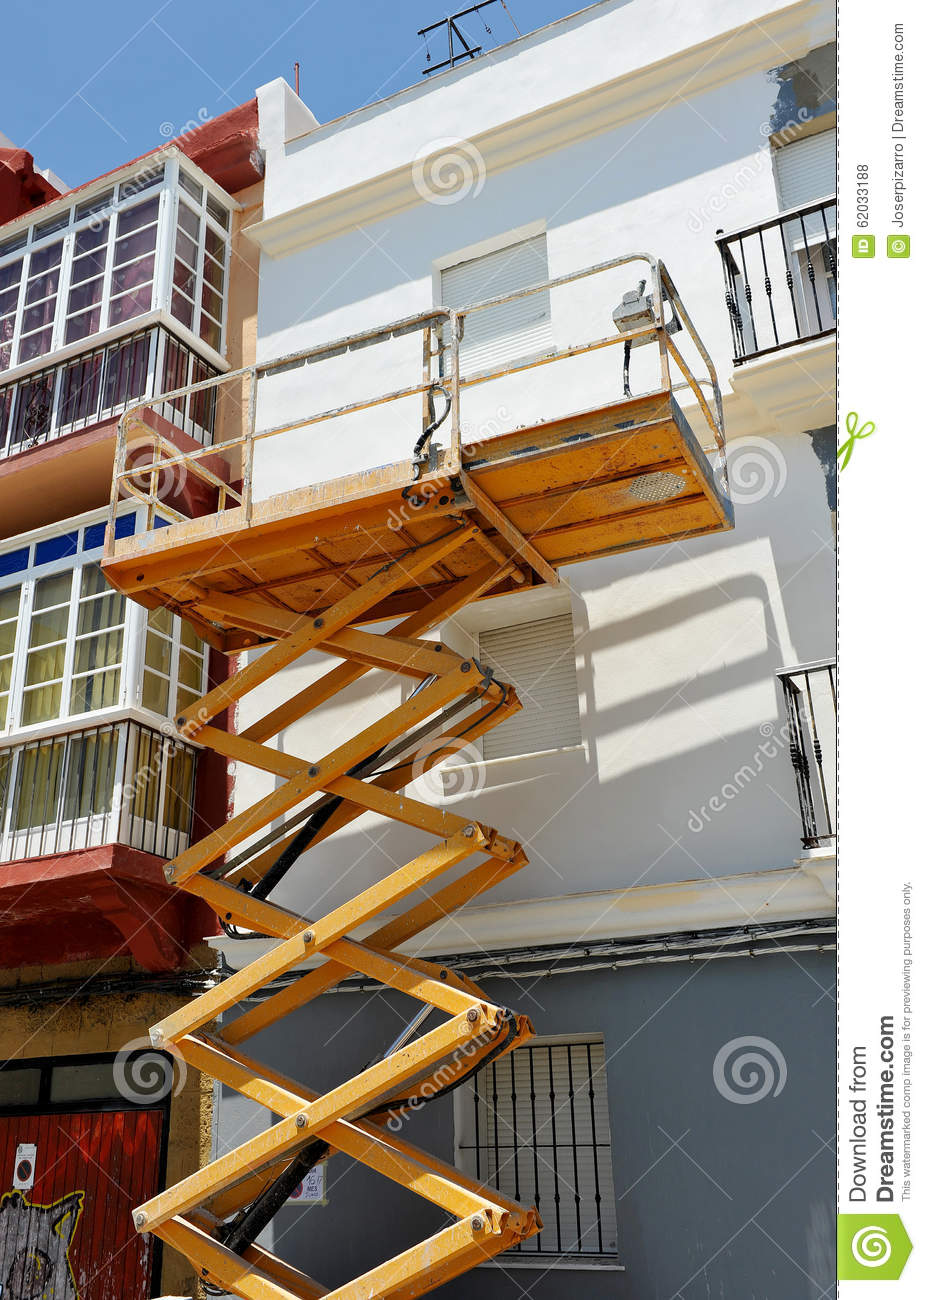 Scissor Lift Platform For Repair Of The Facade Of A House Stock Photo Image Of Masonry